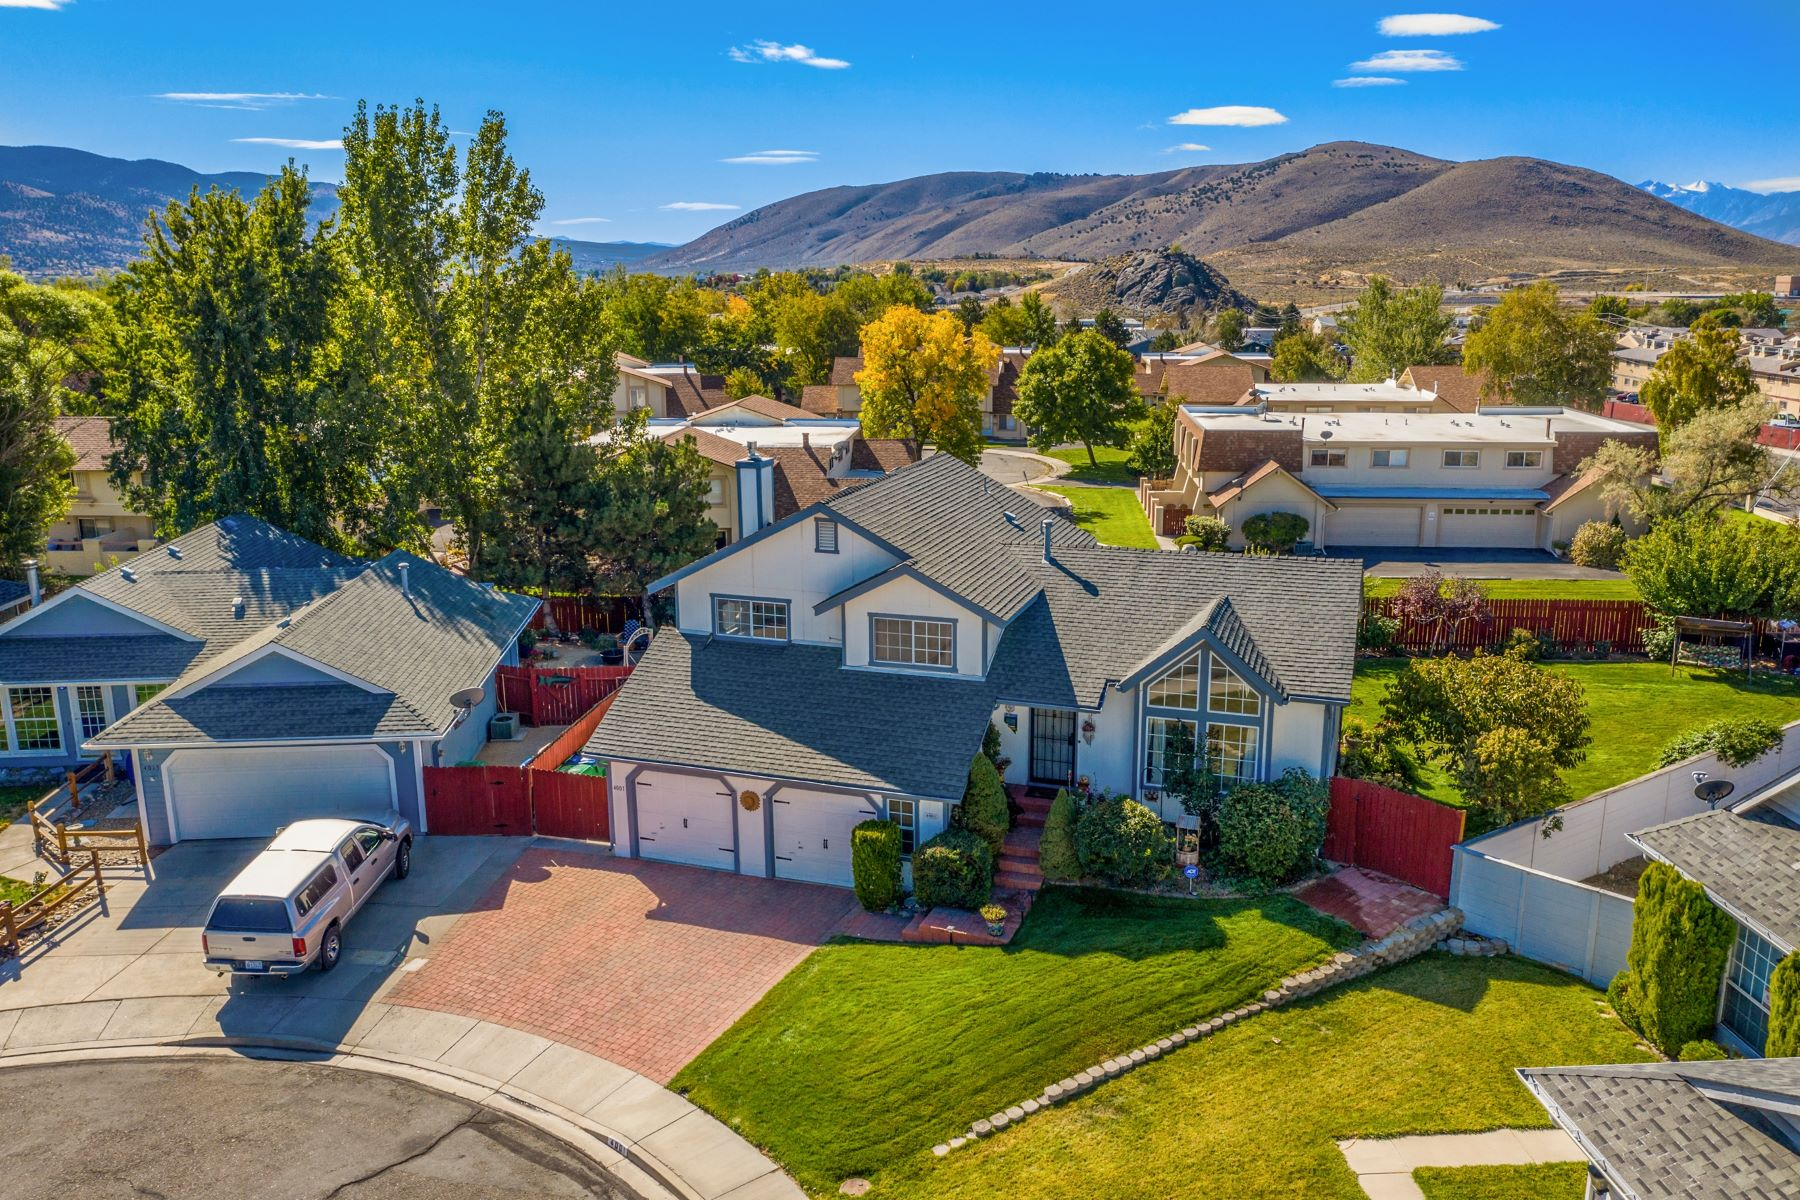 Additional photo for property listing at 4001 Quinn Drive, Carson City, NV 4001 Quinn Drive Carson City, Nevada 89706 United States